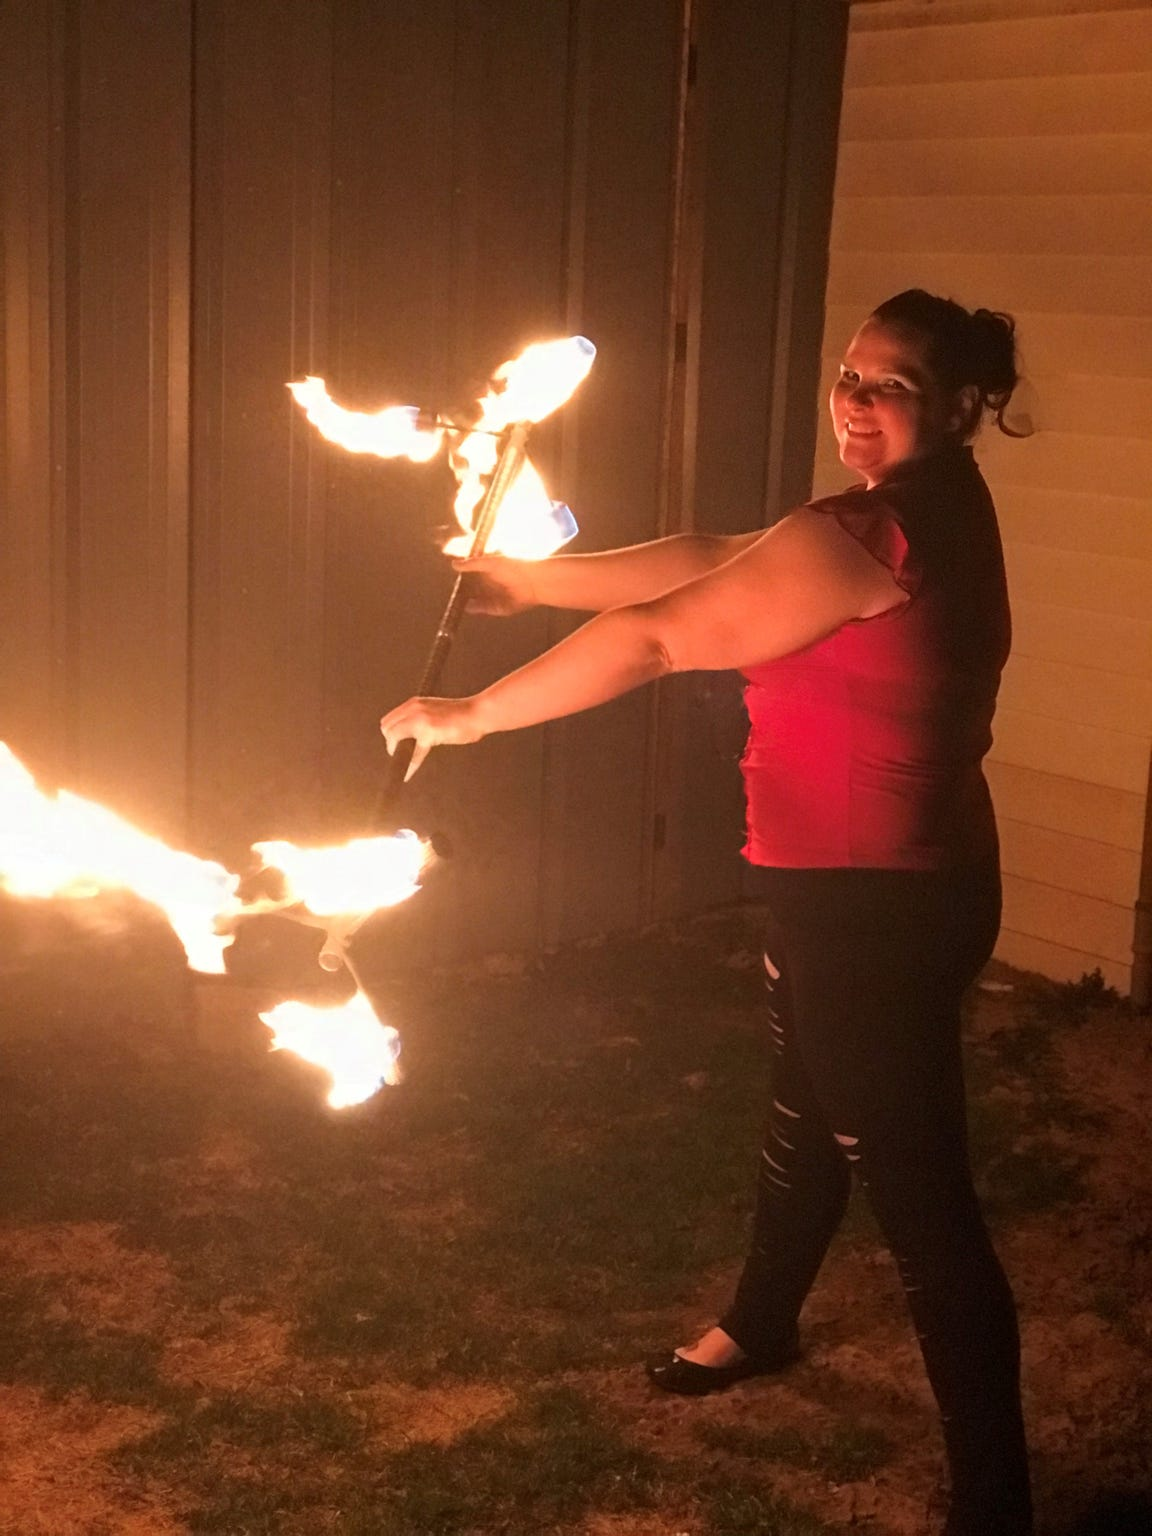 Valerie Ringwell practicing her fire tricks using a dragon staff. The 34-year-old picked up the hobby as a coping method after an assault two years ago.